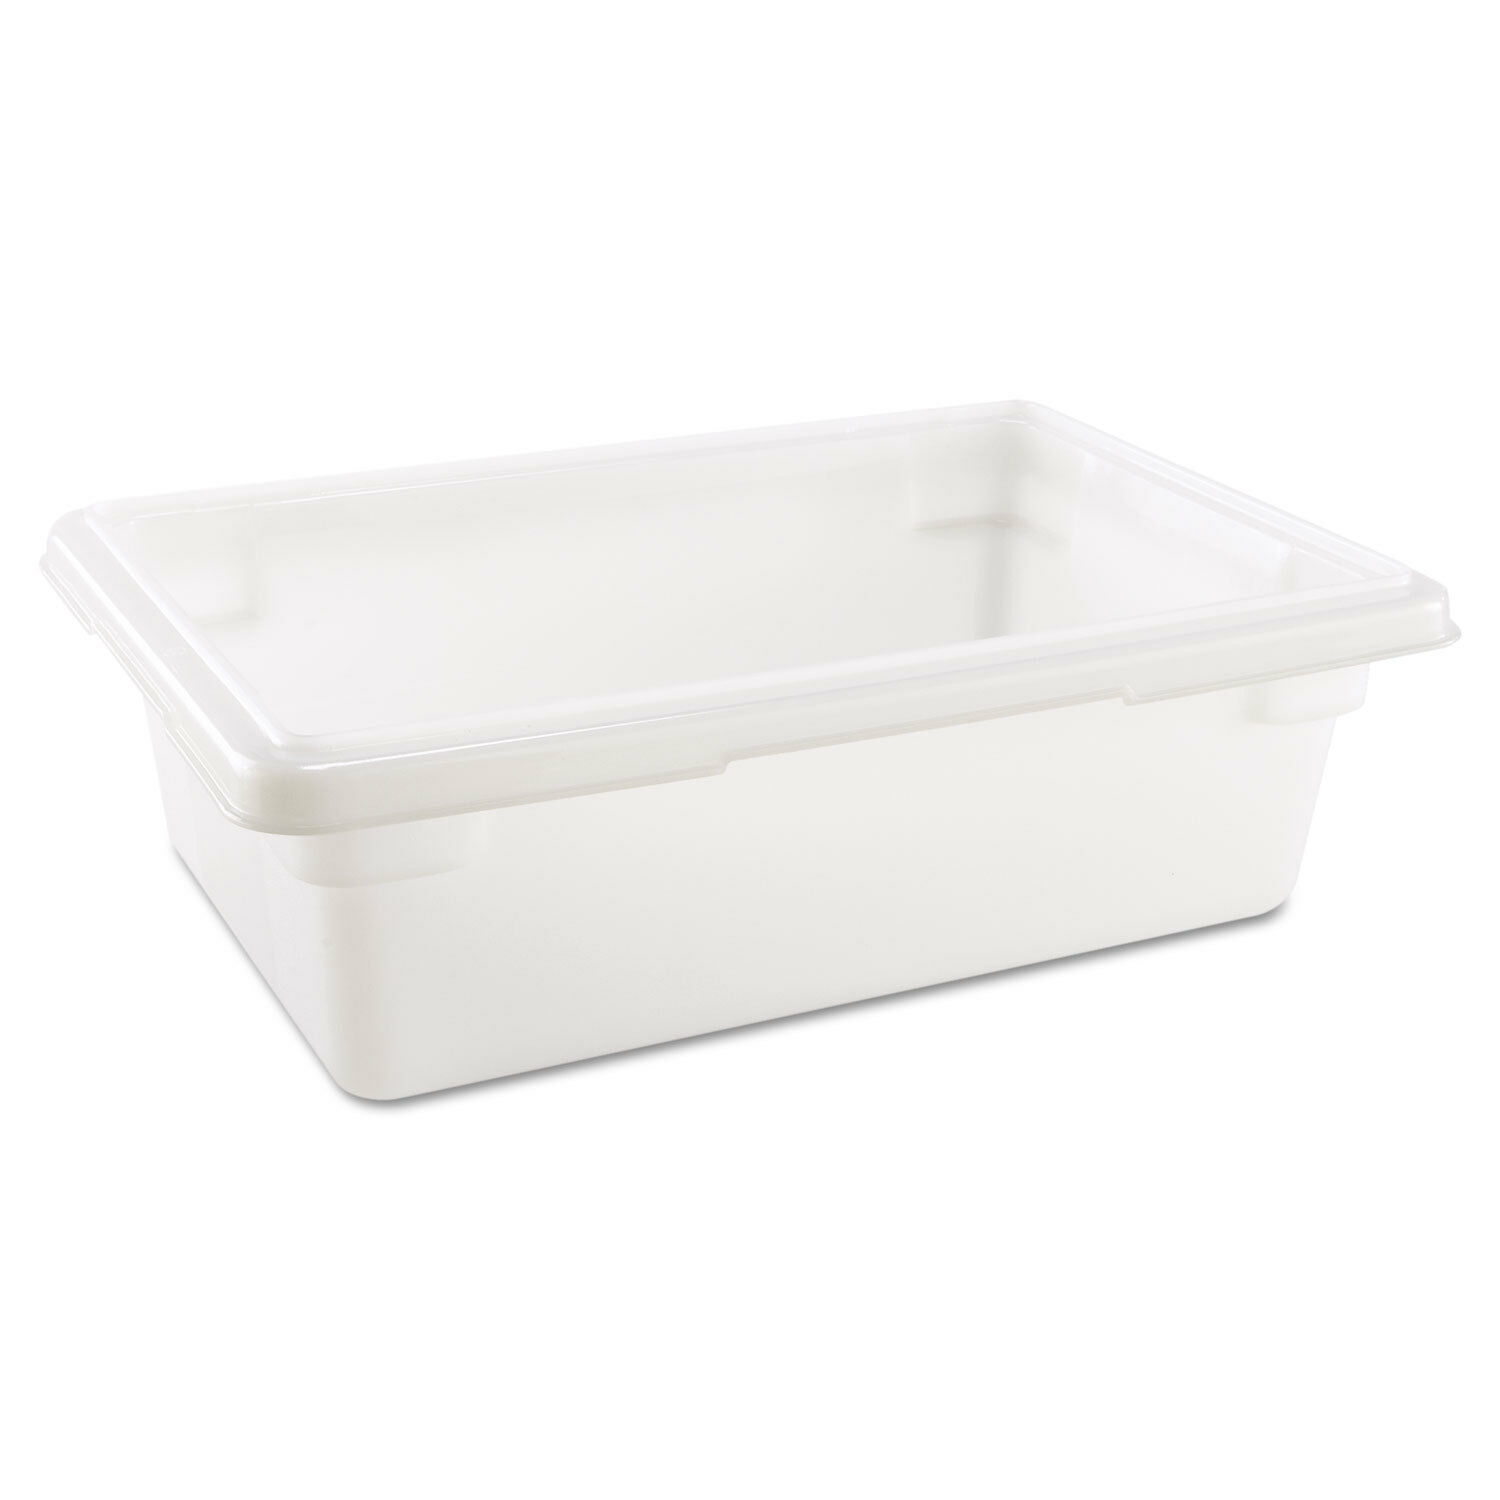 Rubbermaid Commercial Food Storage Tote, 3.5 Gallon, White